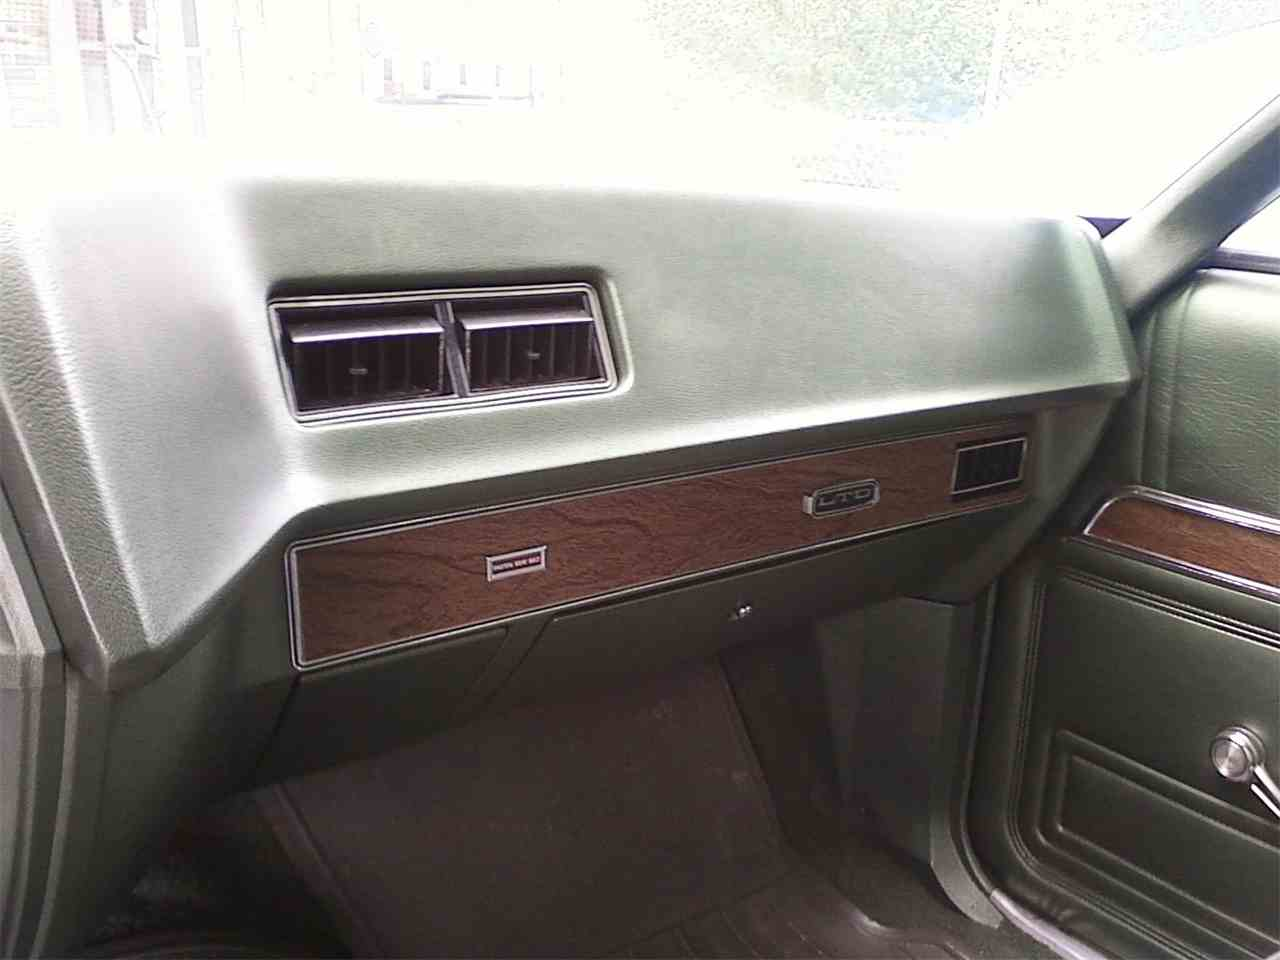 Large Picture of '72 LTD located in Kentucky - $10,000.00 Offered by a Private Seller - LAP8